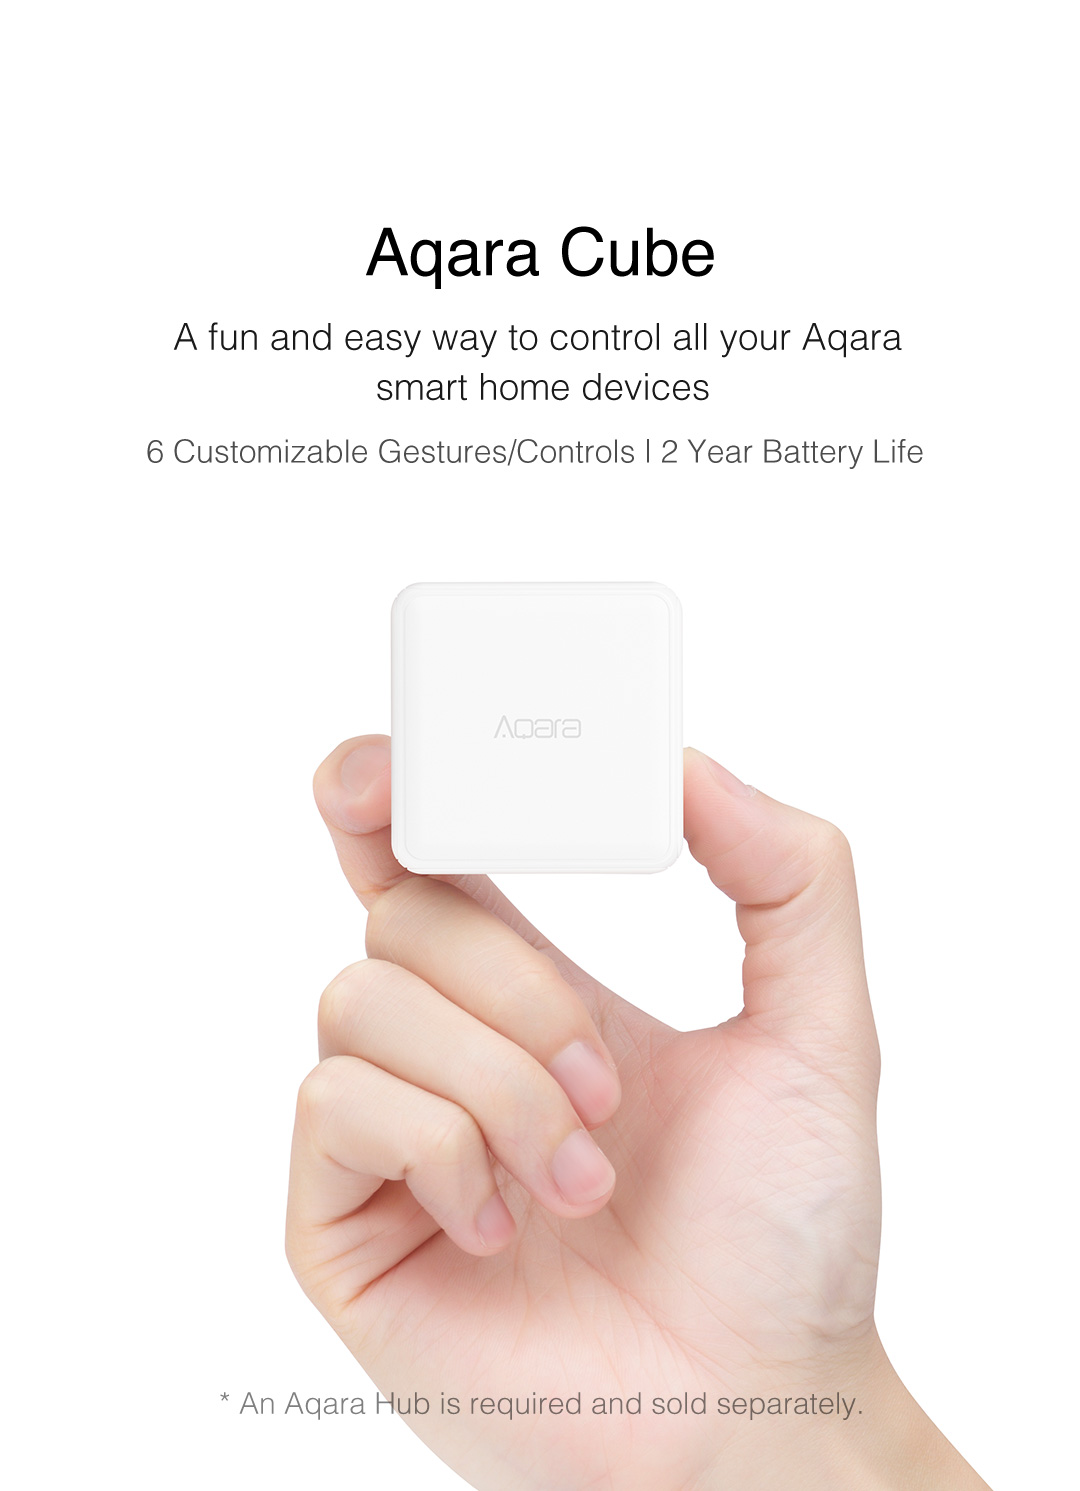 Aqara Cube - A fun and easy way to control your smart home devices